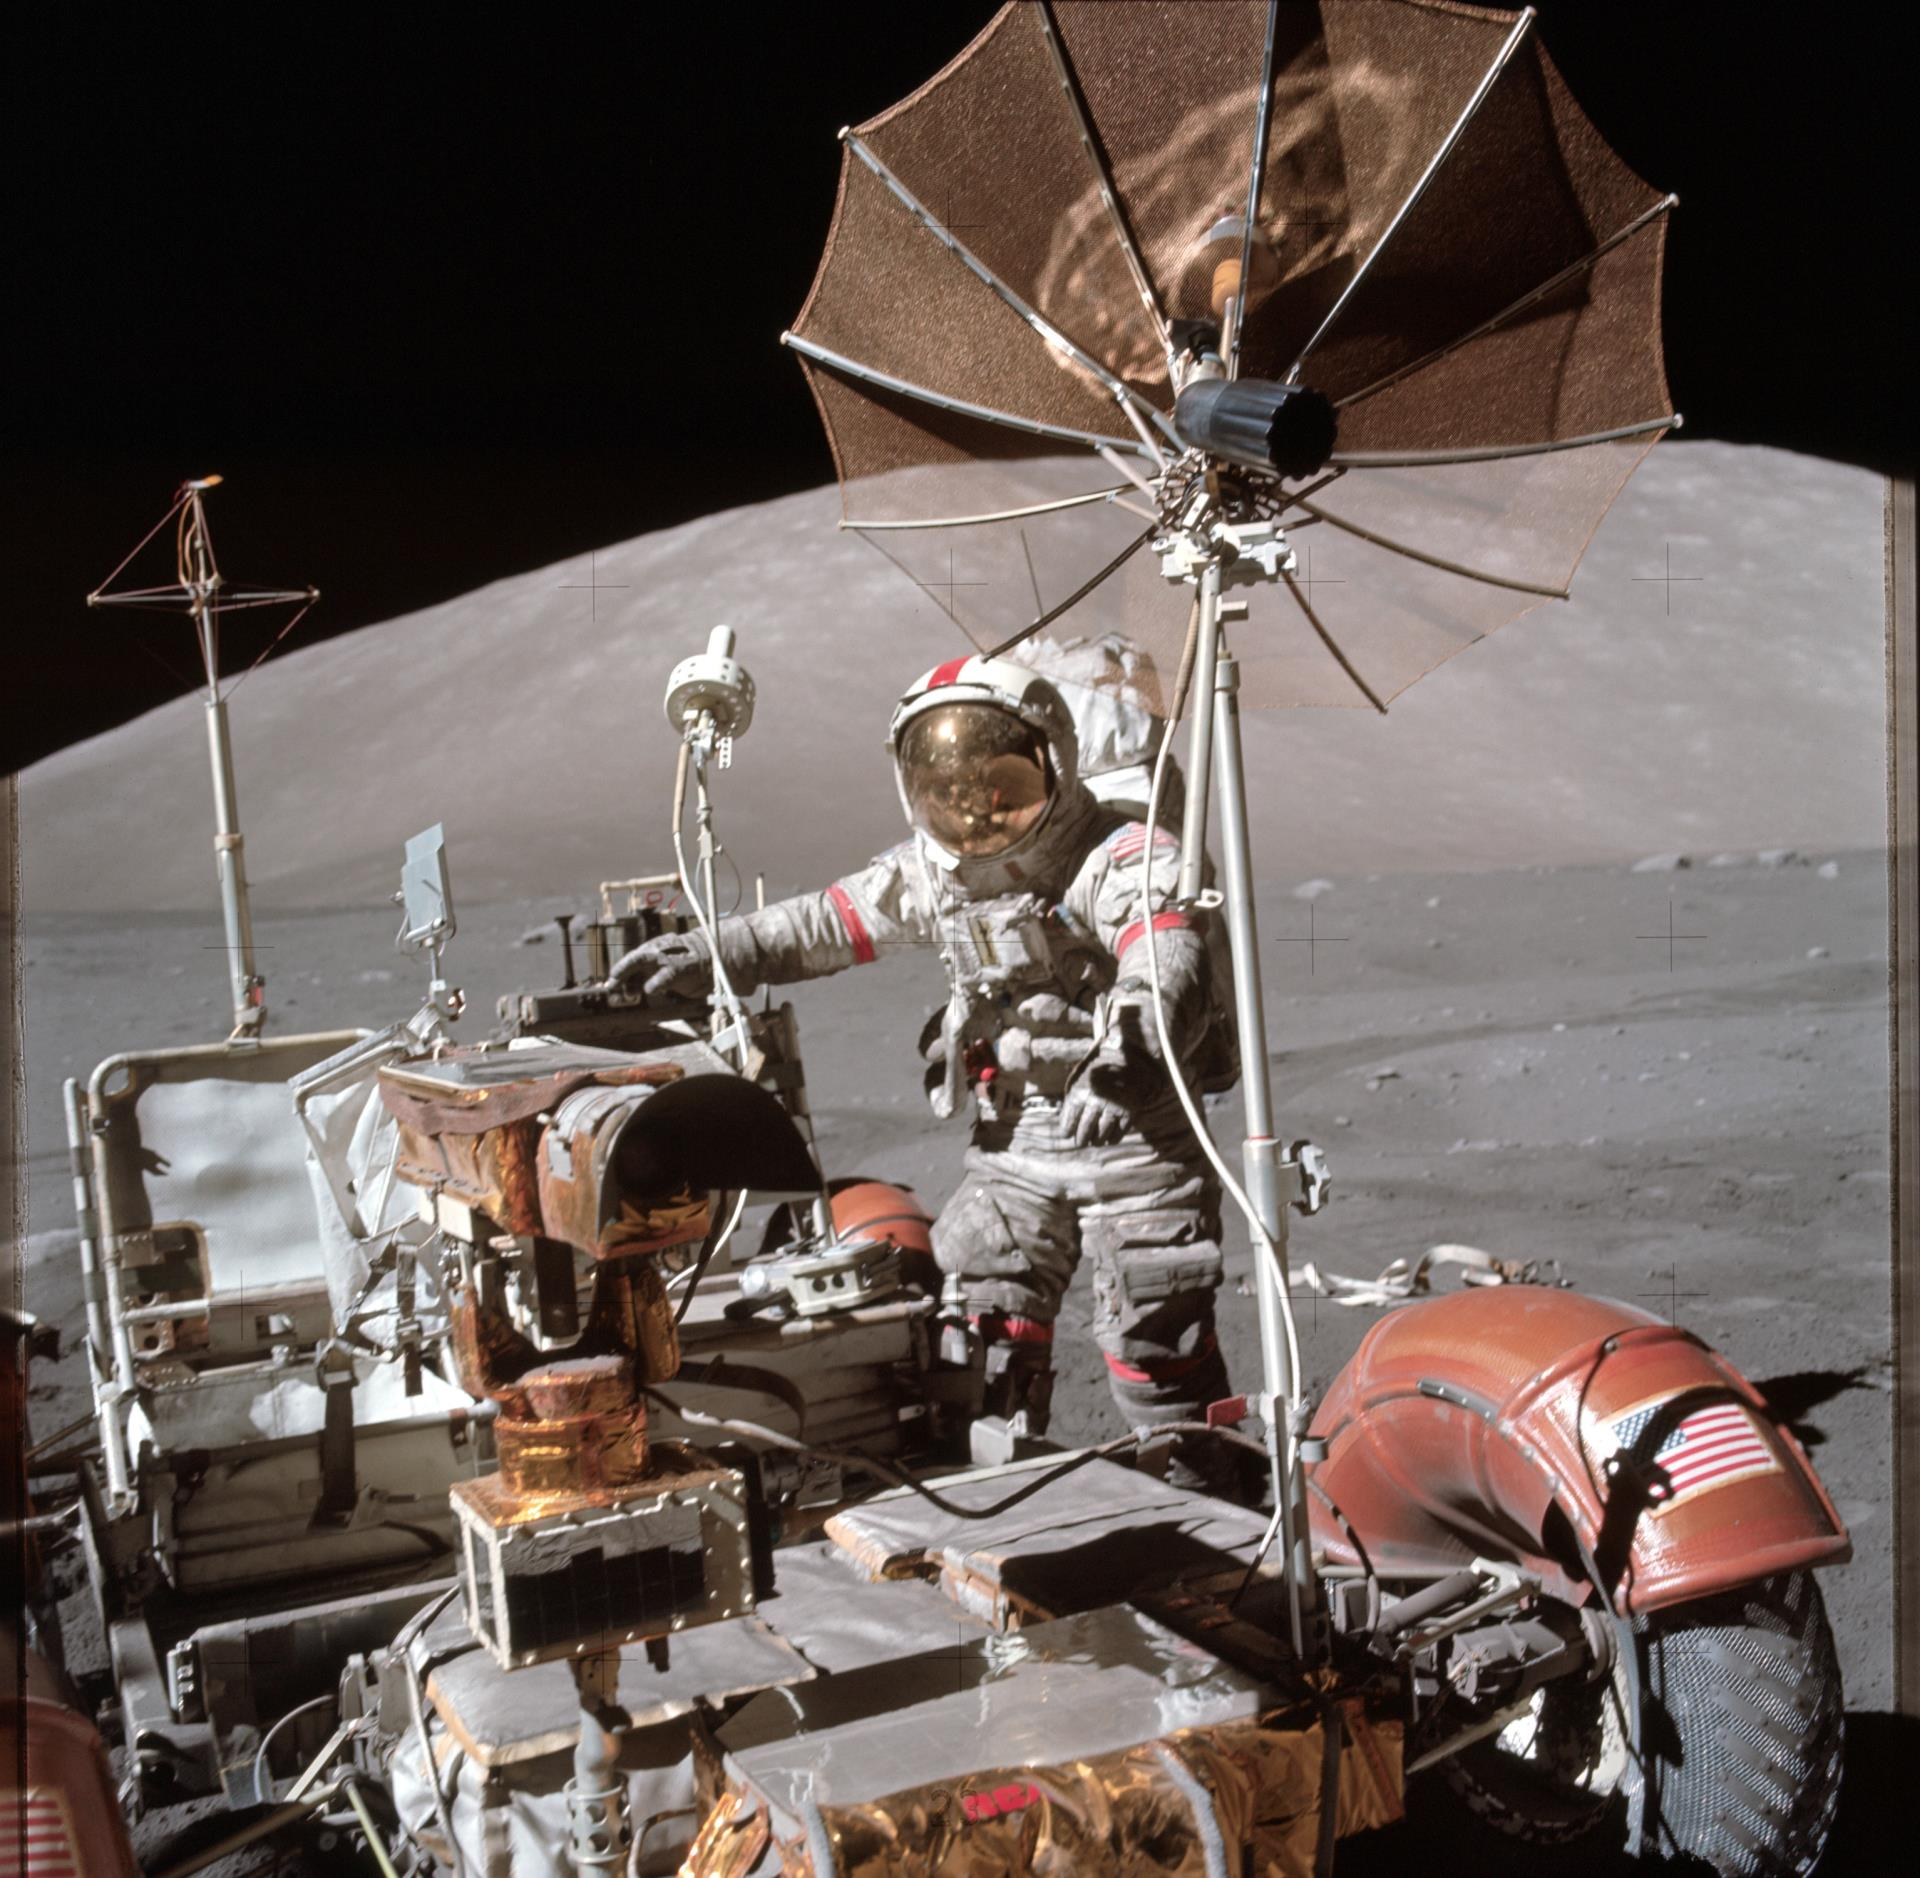 Astronaut standing beside lunar rover on the moon